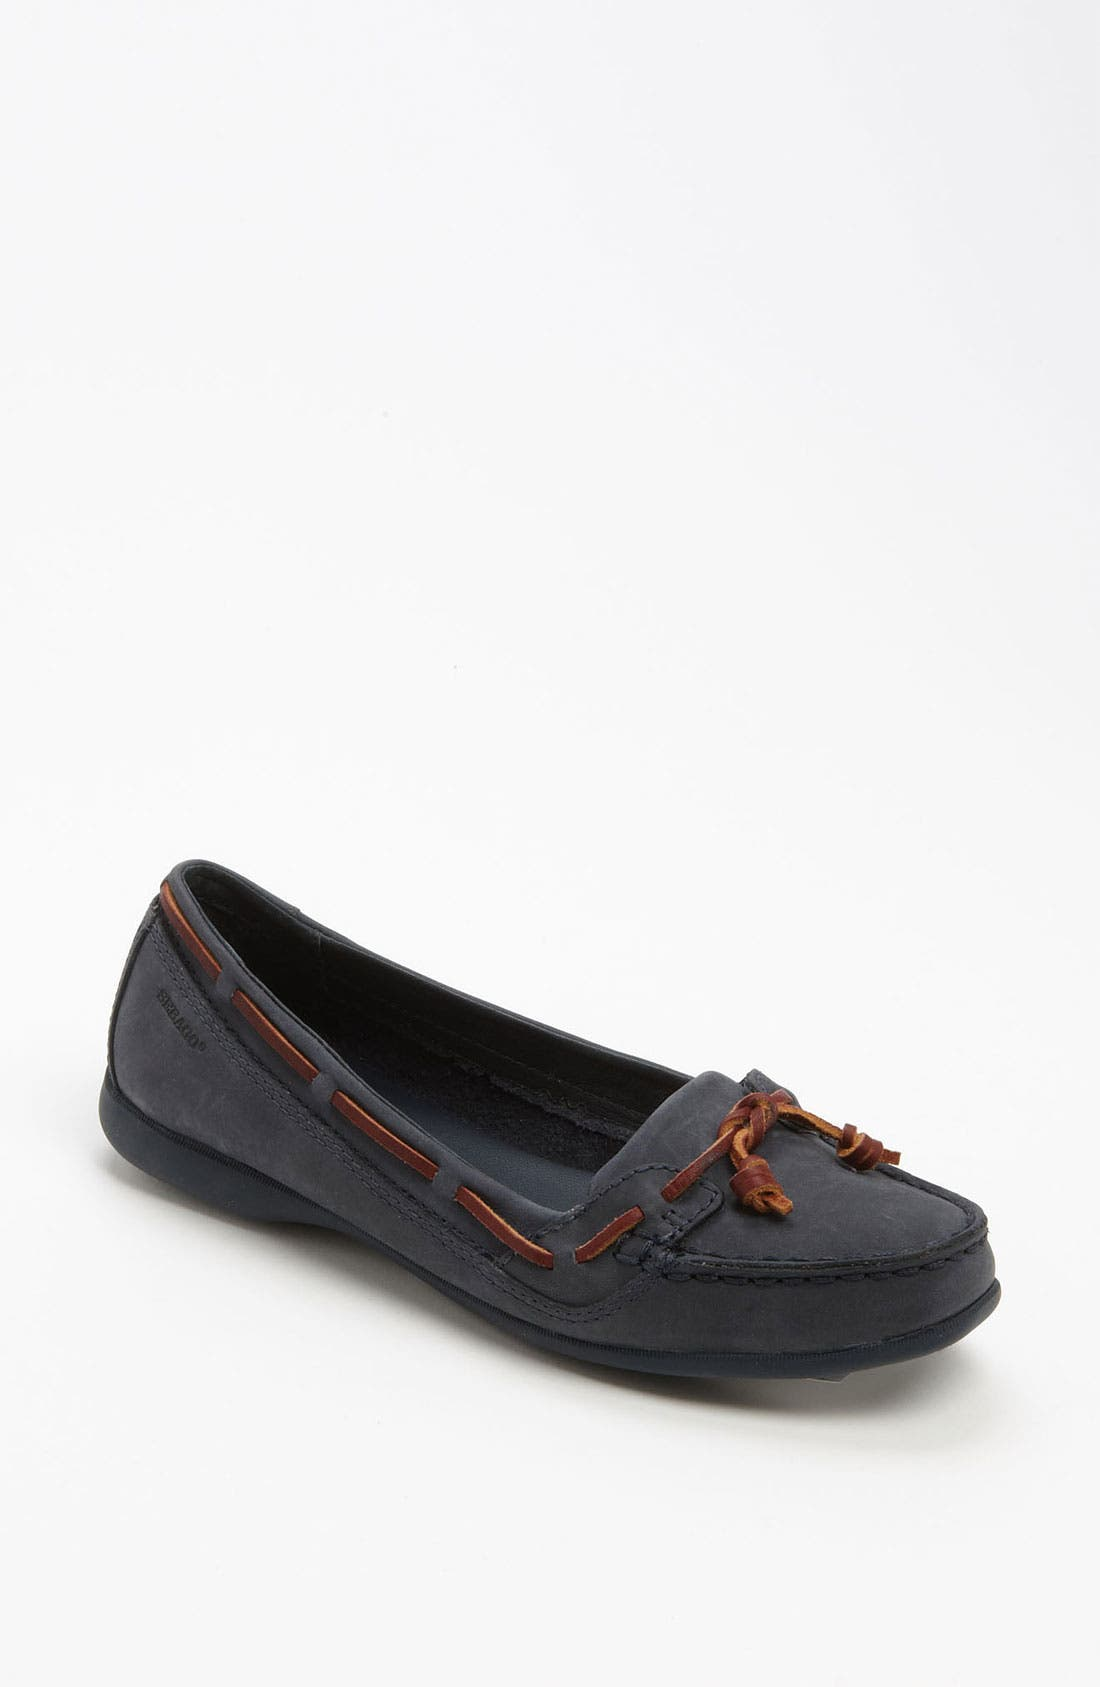 Alternate Image 1 Selected - Sebago 'Felucca' Boat Shoe